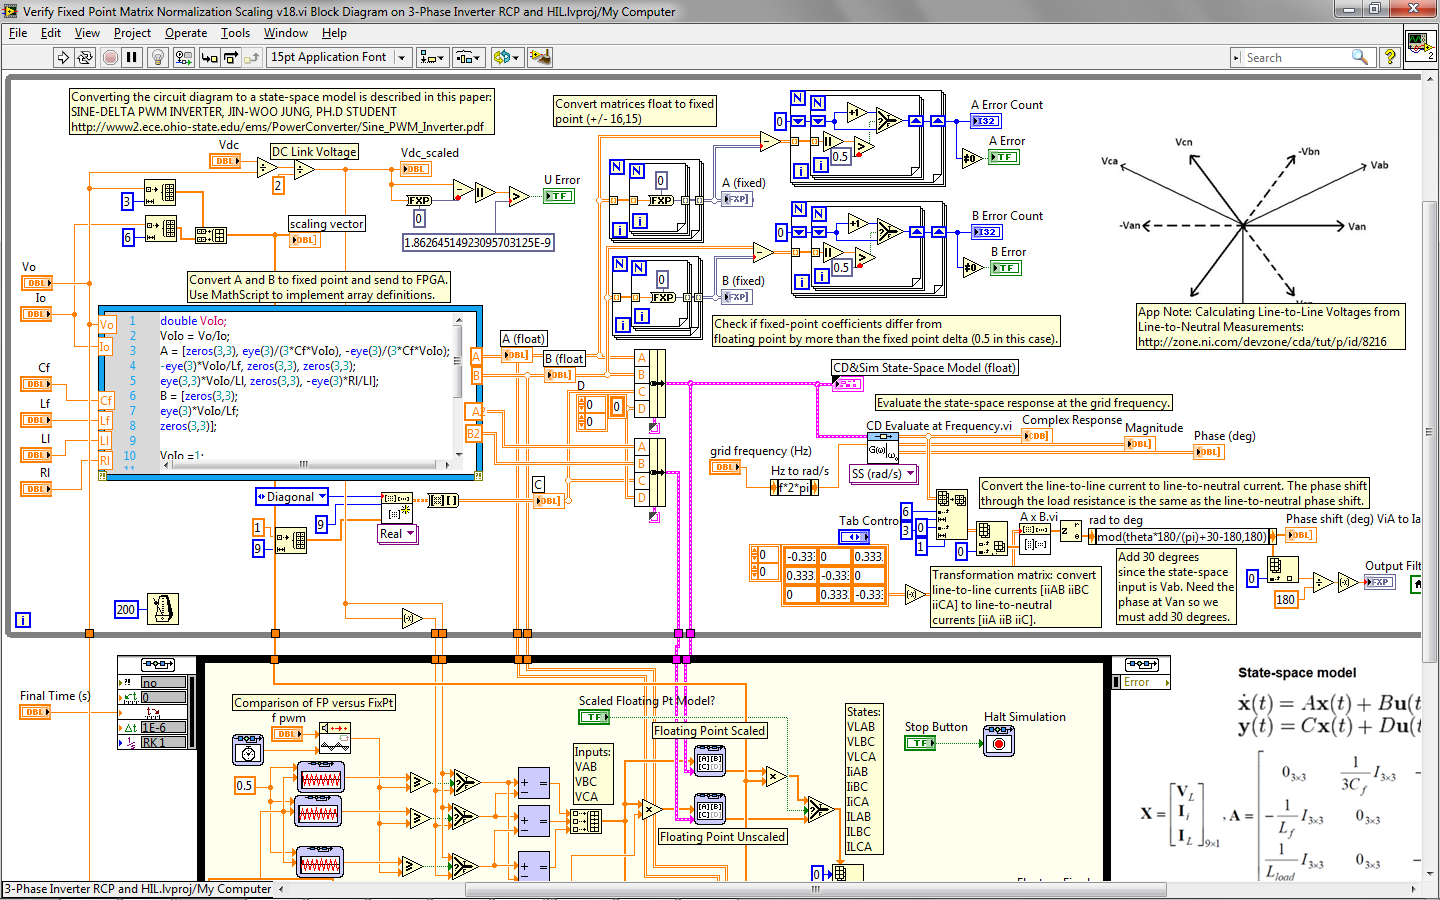 Open Source Reference Design Fpga Based State Space Real Time Hil Ni Myrio1900 Hardware Block Diagram Myrio Toolkit Labview 2014 Simulation Of 3 Phase Inverter Discussion Forums National Instruments